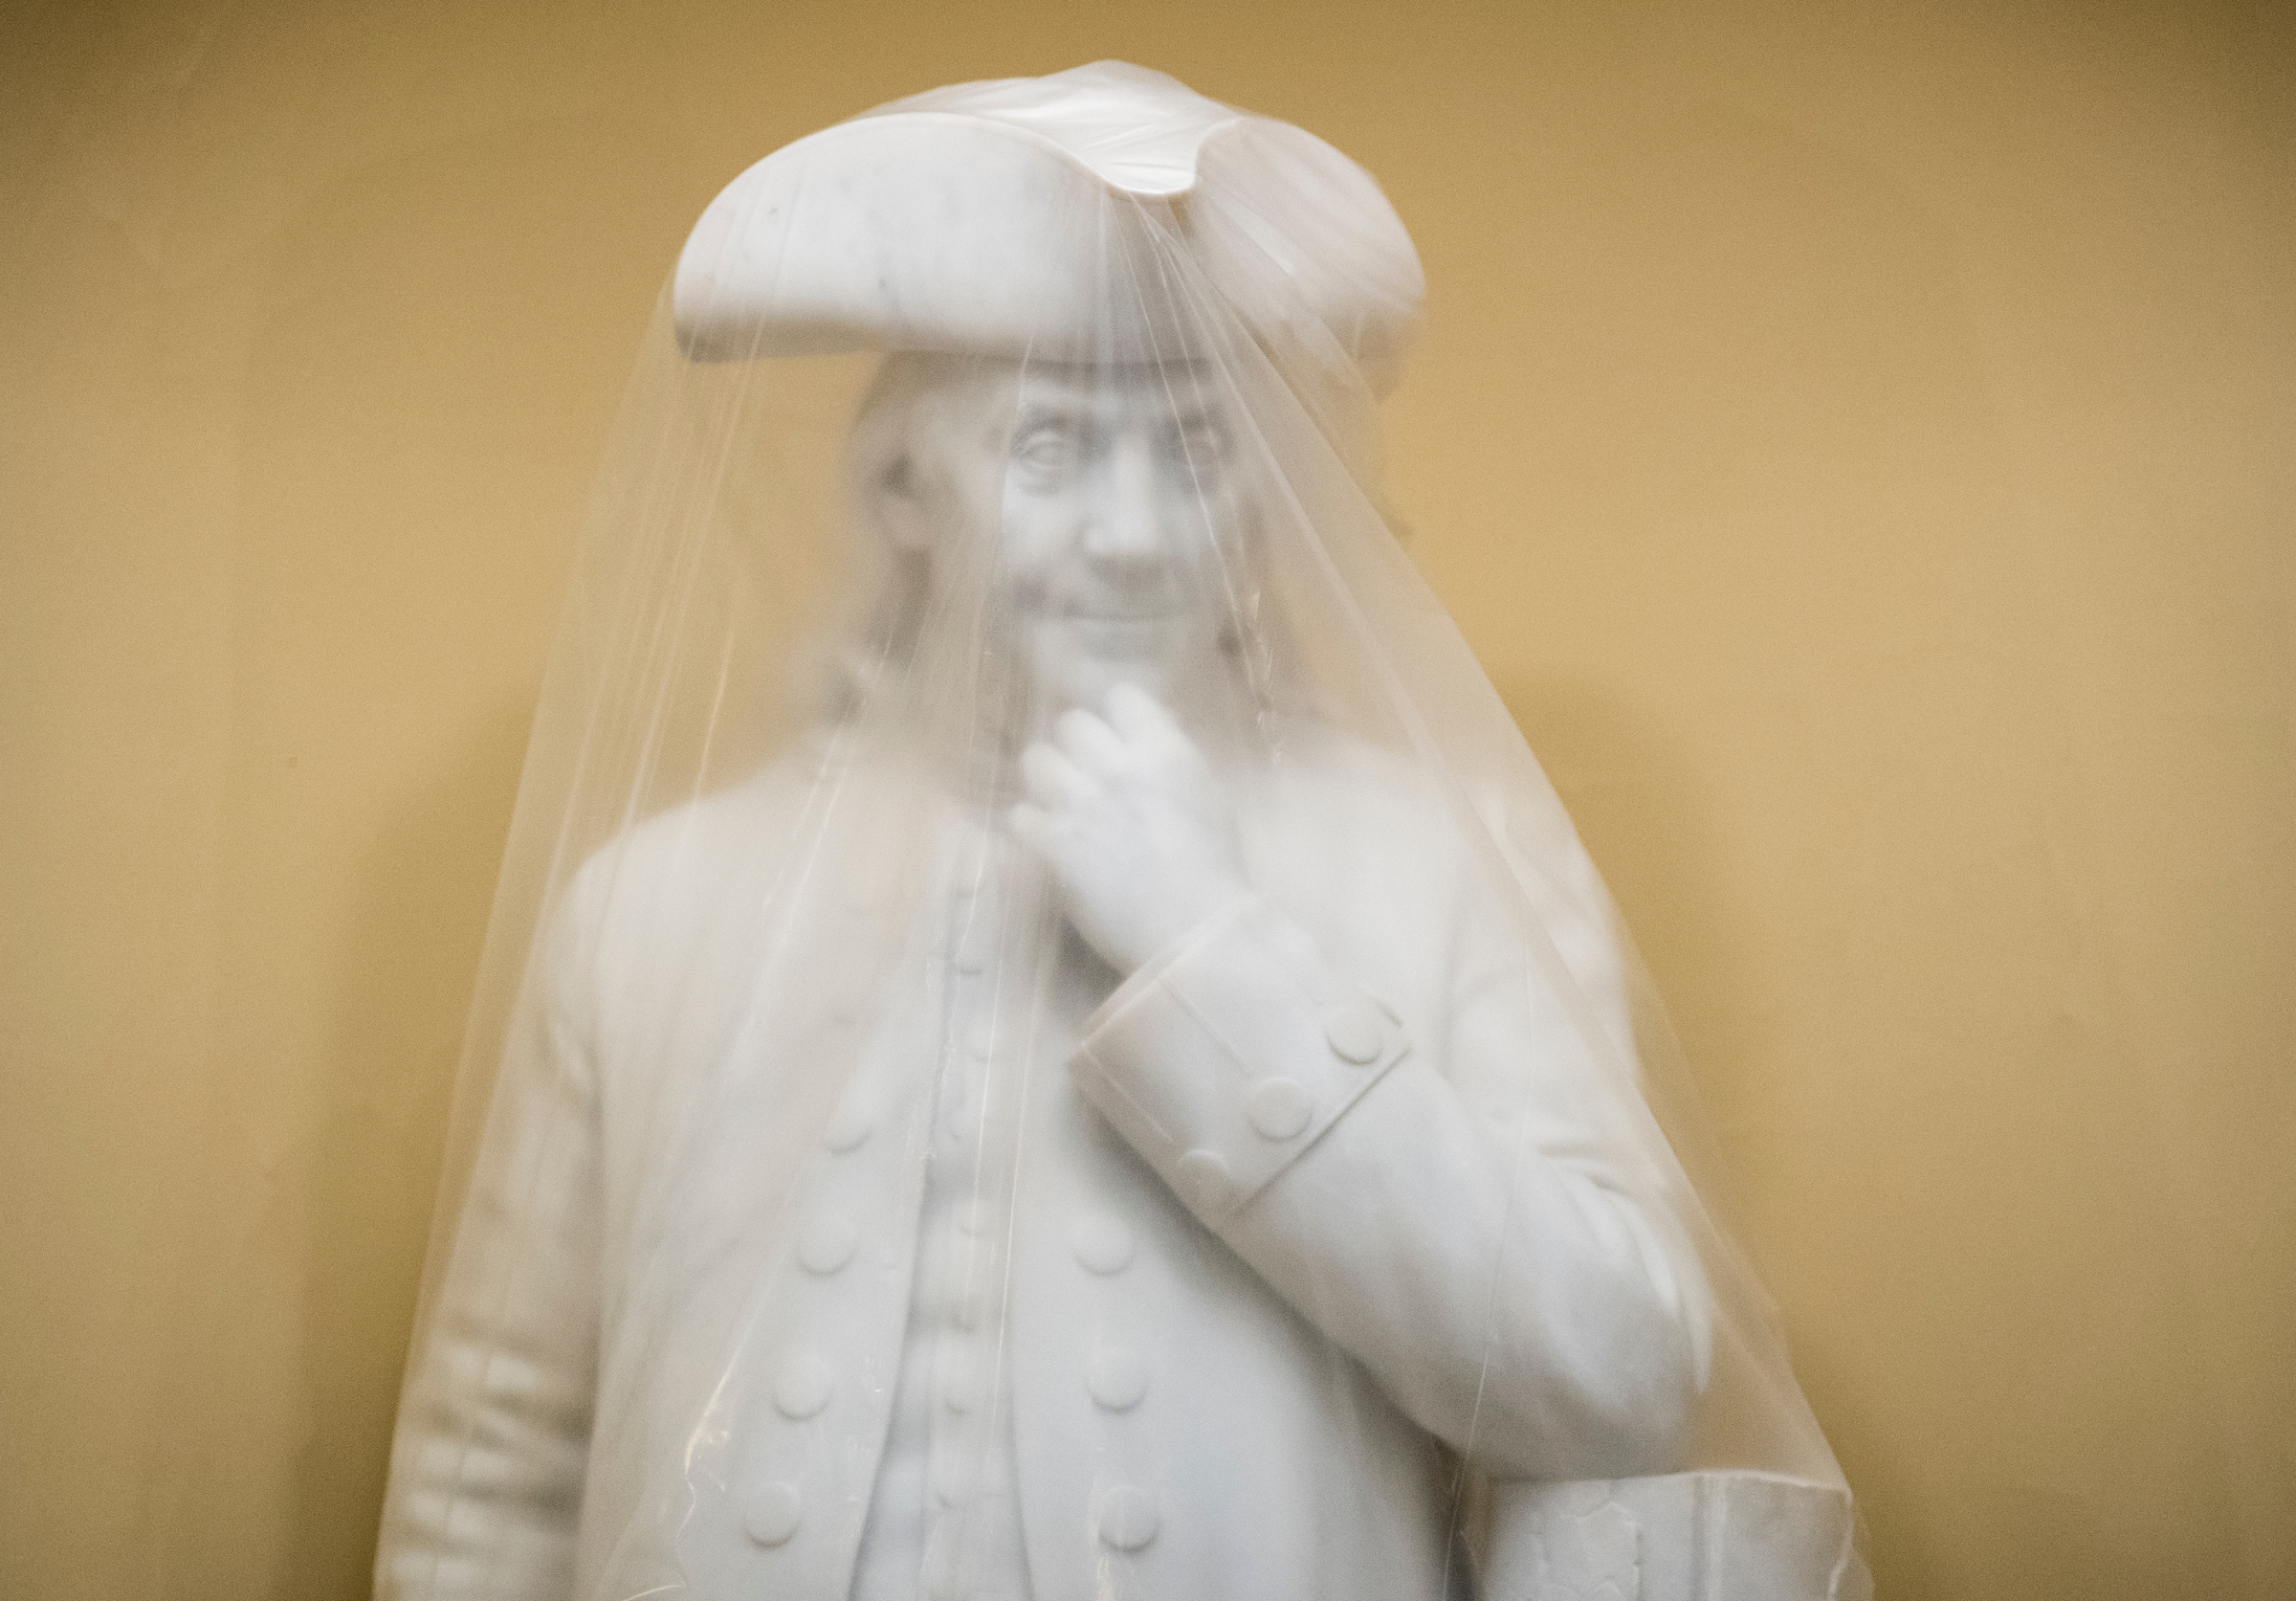 A plastic sheet covers the statue of Ben Franklin in the Capitol on Wednesday. (Bill Clark/CQ Roll Call)